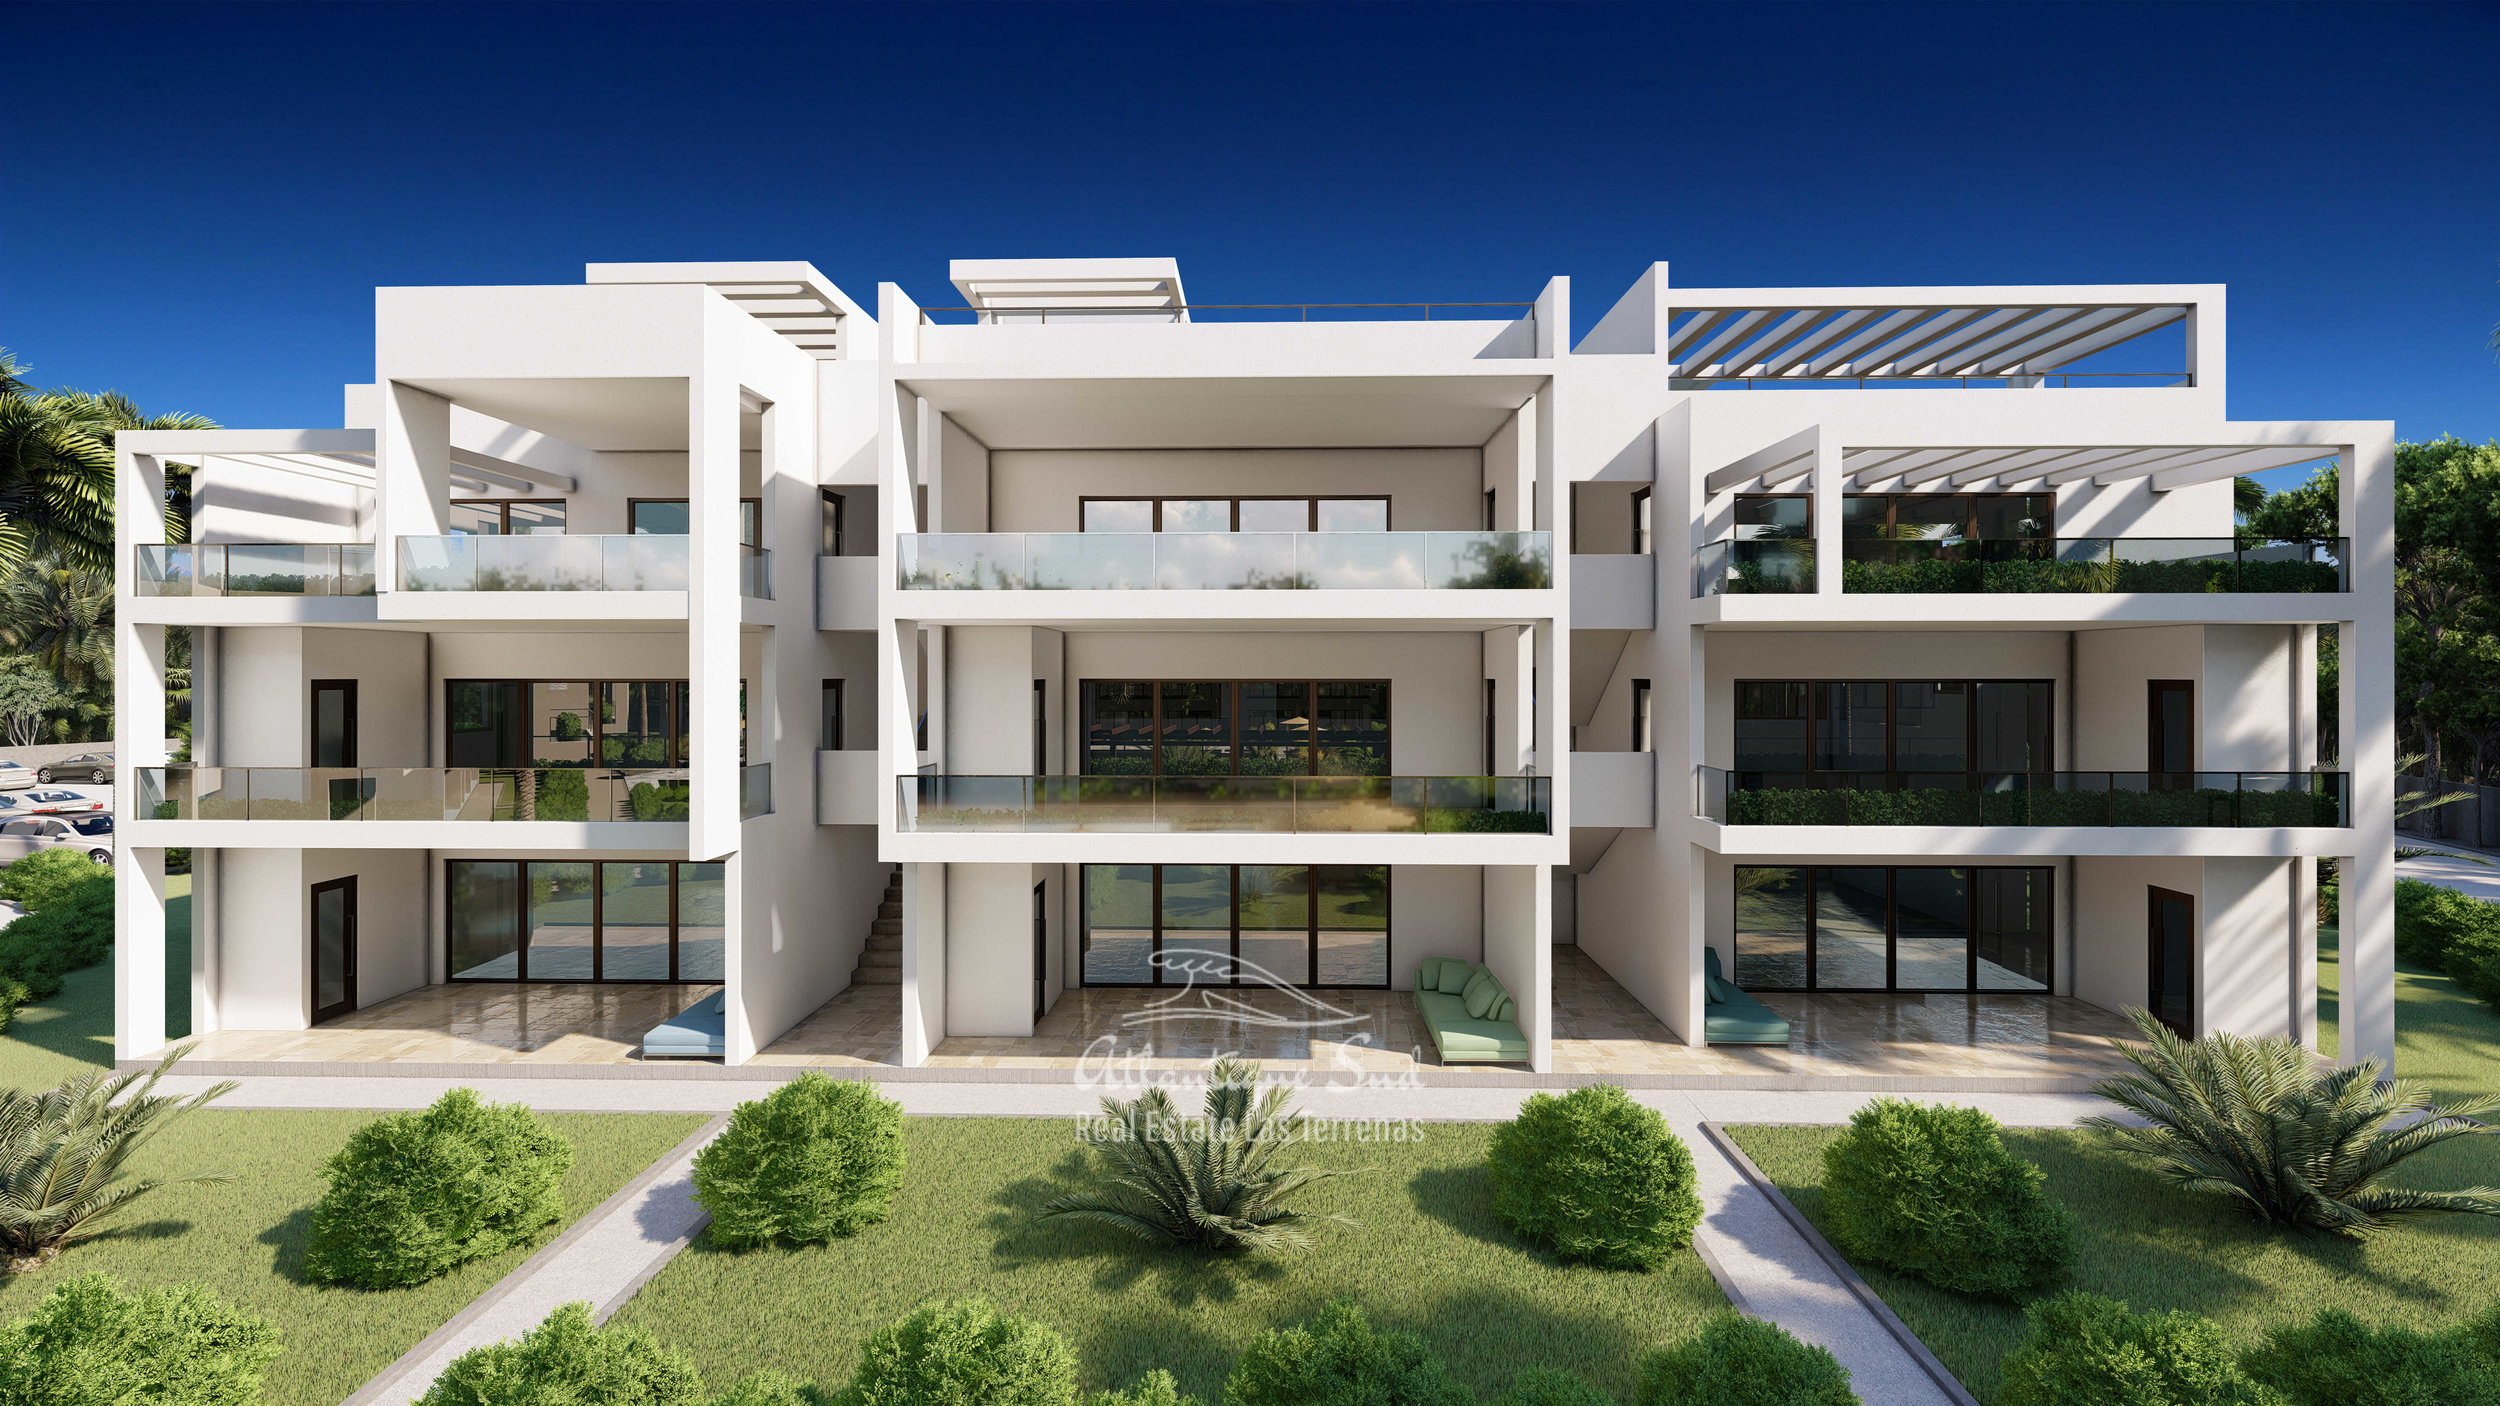 Development of modern condos steps from the beach Real Estate Las Terrenas Atlantique Sud Dominican Republic7.jpg